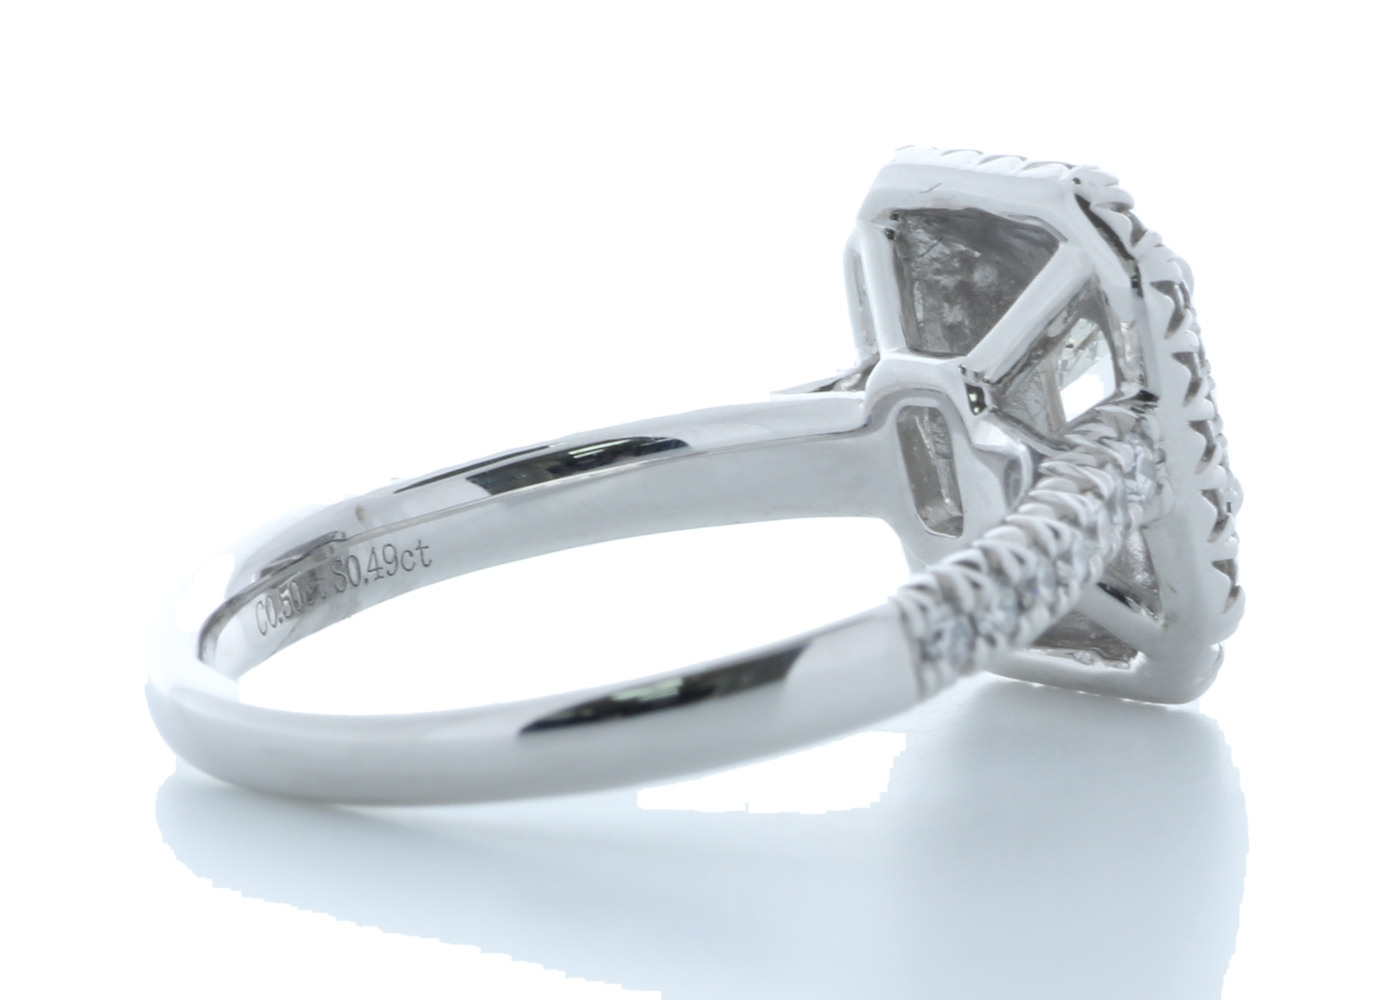 Platinum Single Stone With Halo Setting Ring 0.99 Carats - Image 4 of 4